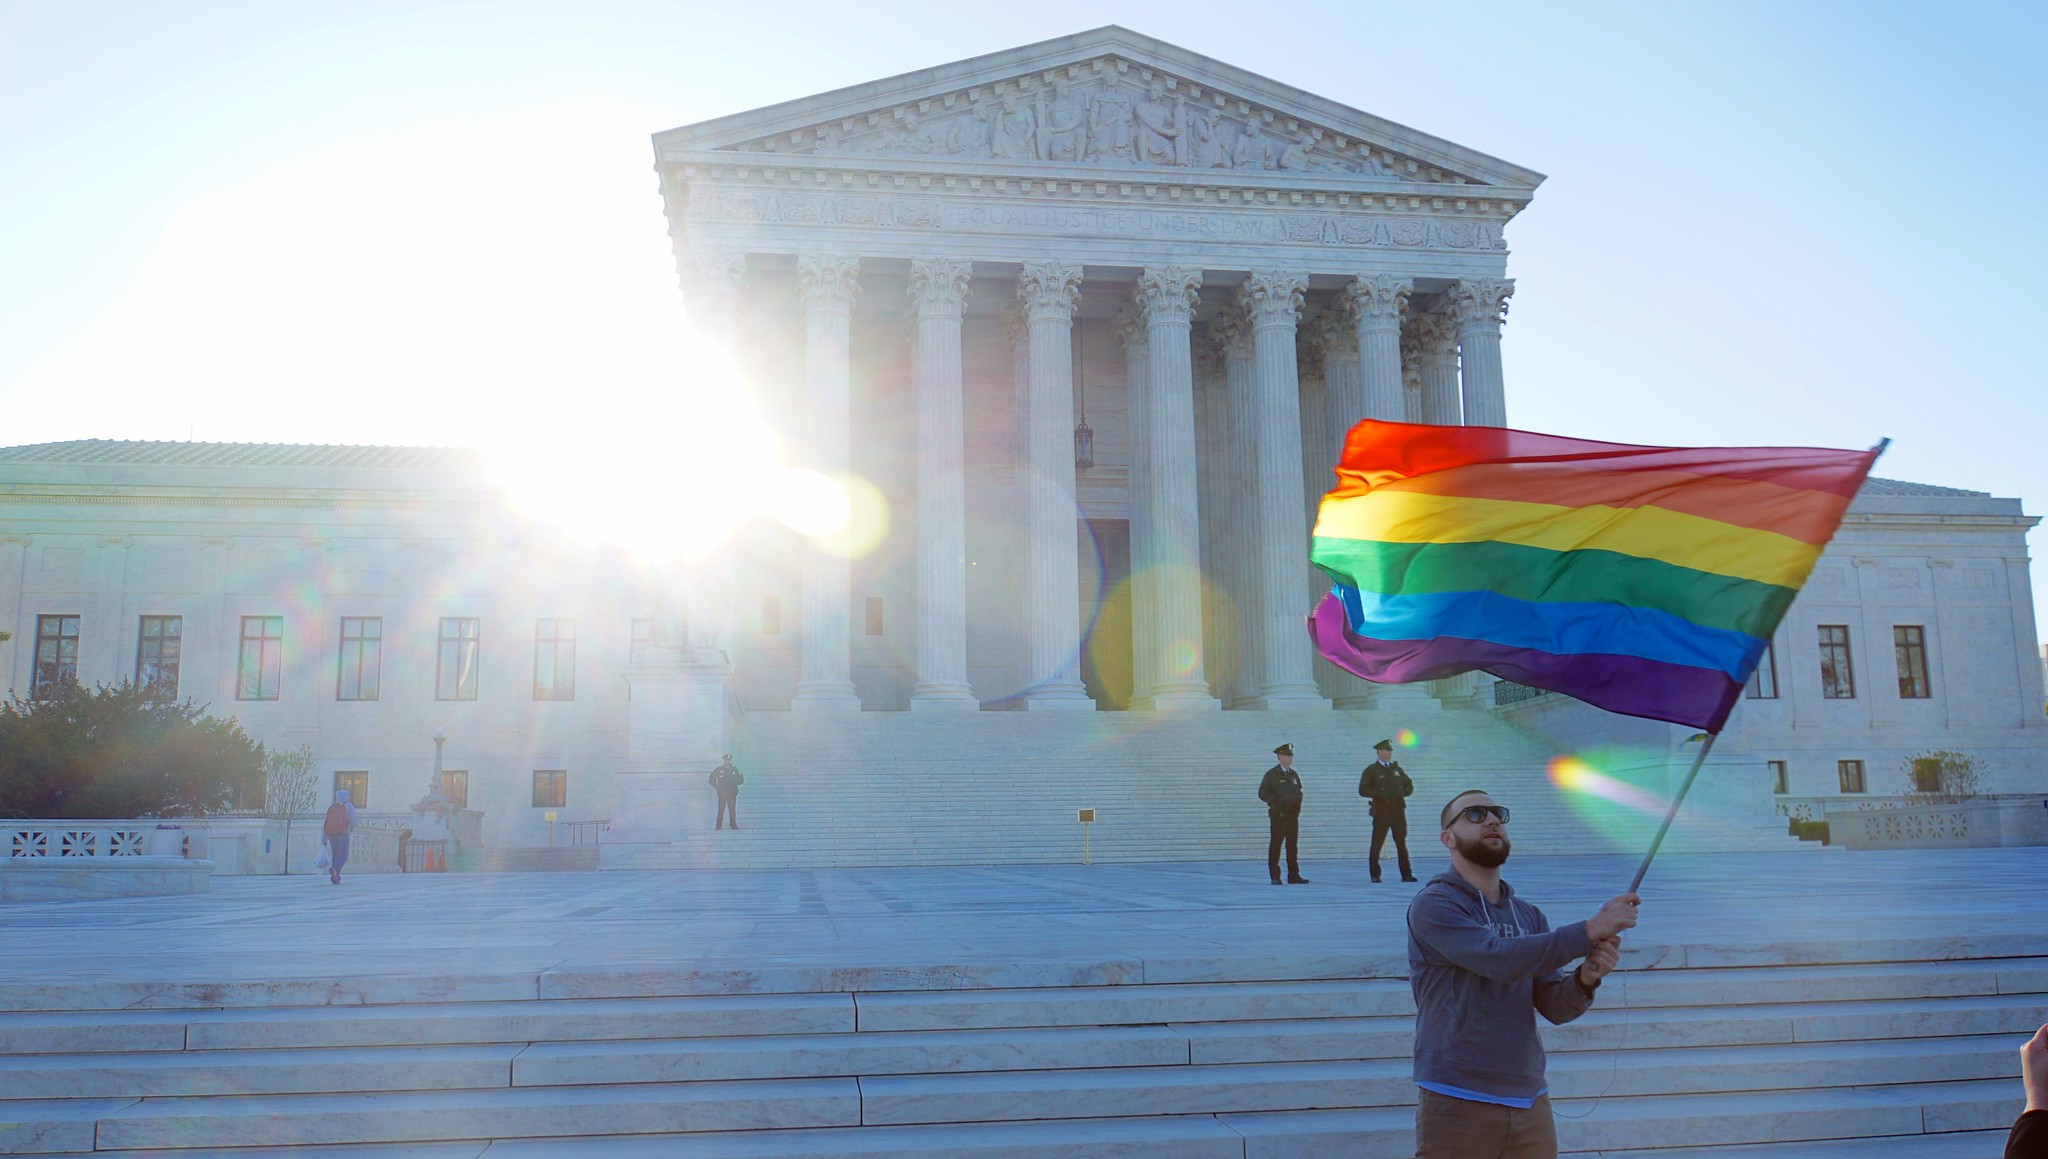 Photo taken at steps of Supreme Court, 2015, on Gay Marriage decision. Man carrying Pride flag.